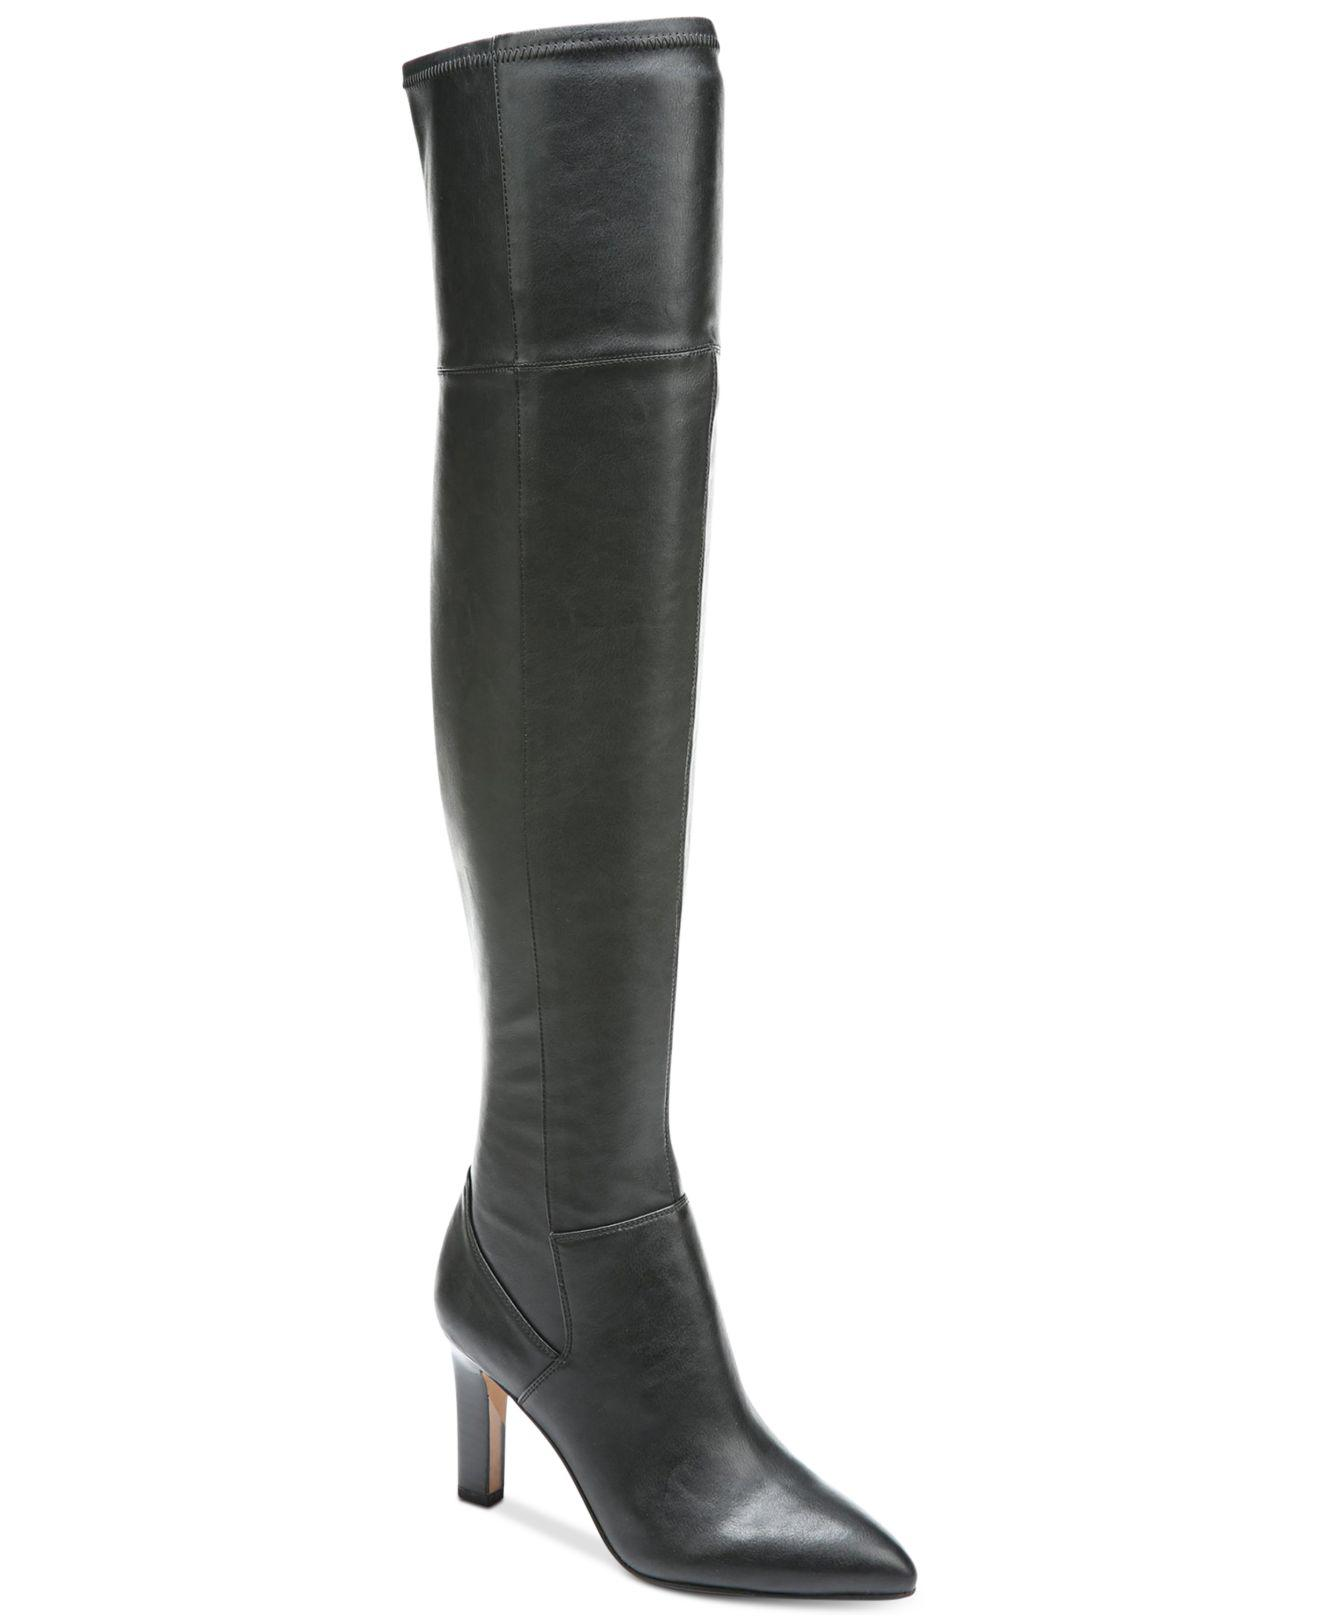 552124f217c Lyst - Franco Sarto Katie Over-the-knee Boots in Black